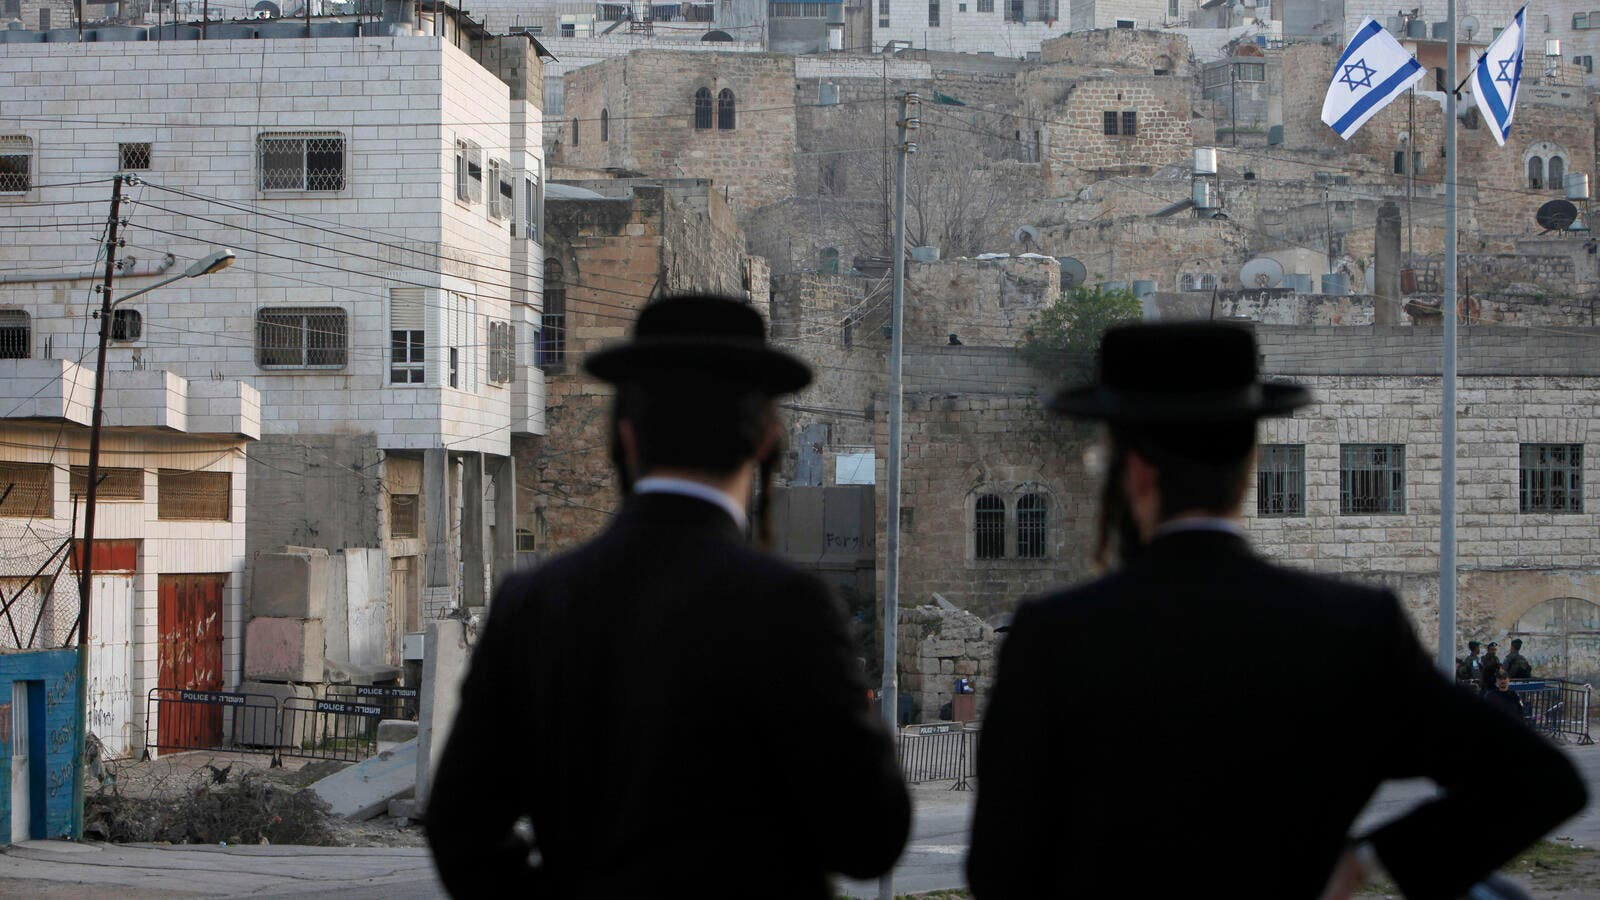 Israel's Economy Minister wants the Jewish state to annex parts of the West Bank where many Israeli settlers live (File Archive)